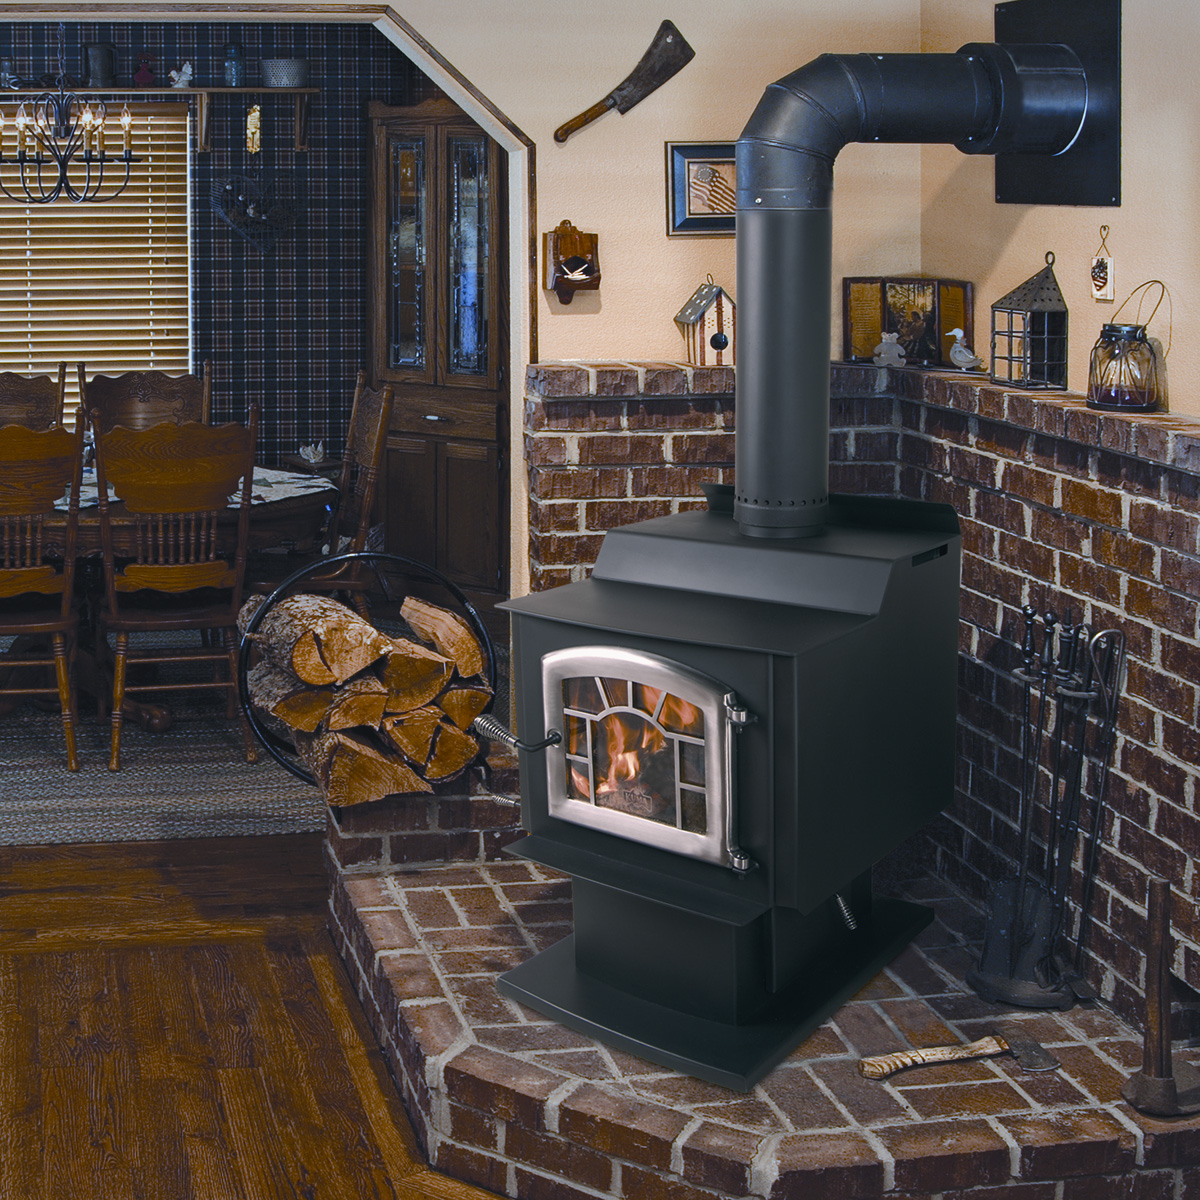 Kuma Wood Classic wood stove, made in the USA